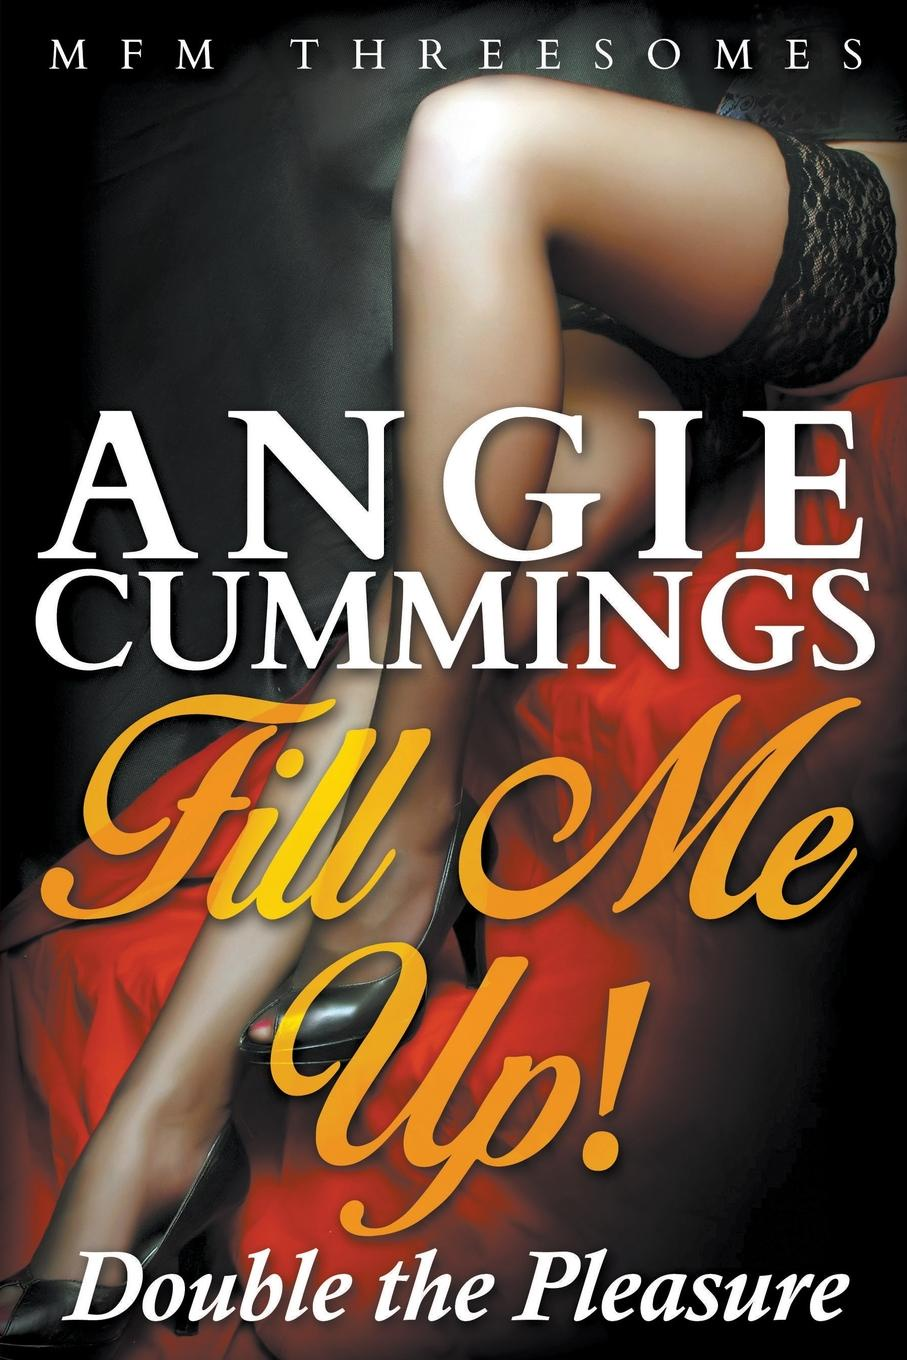 Angie Cummings Fill Me Up! Double the Pleasure (MFM Threesomes)